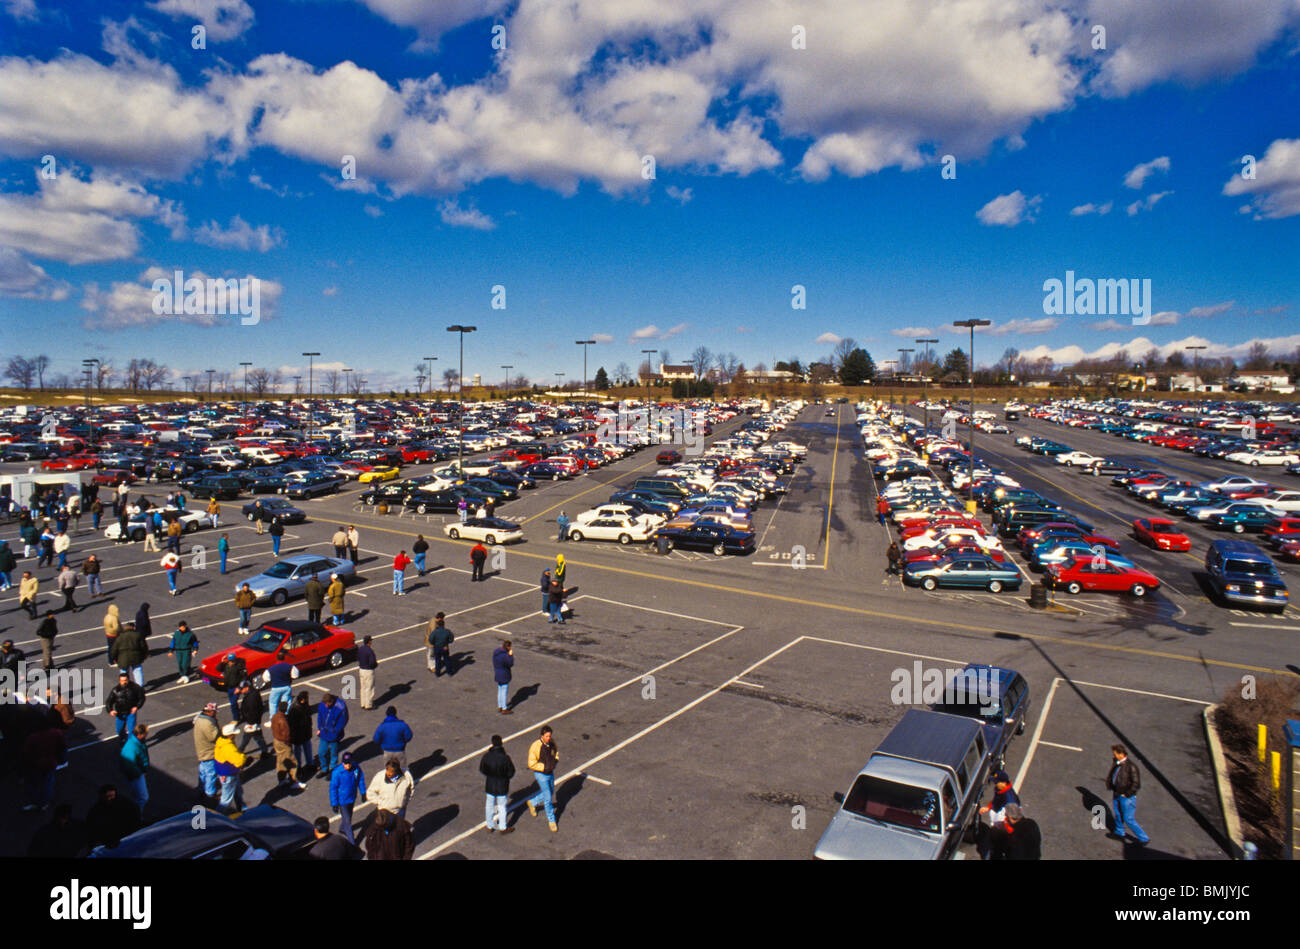 View of used automobiles at Manheim Auto auction, world's